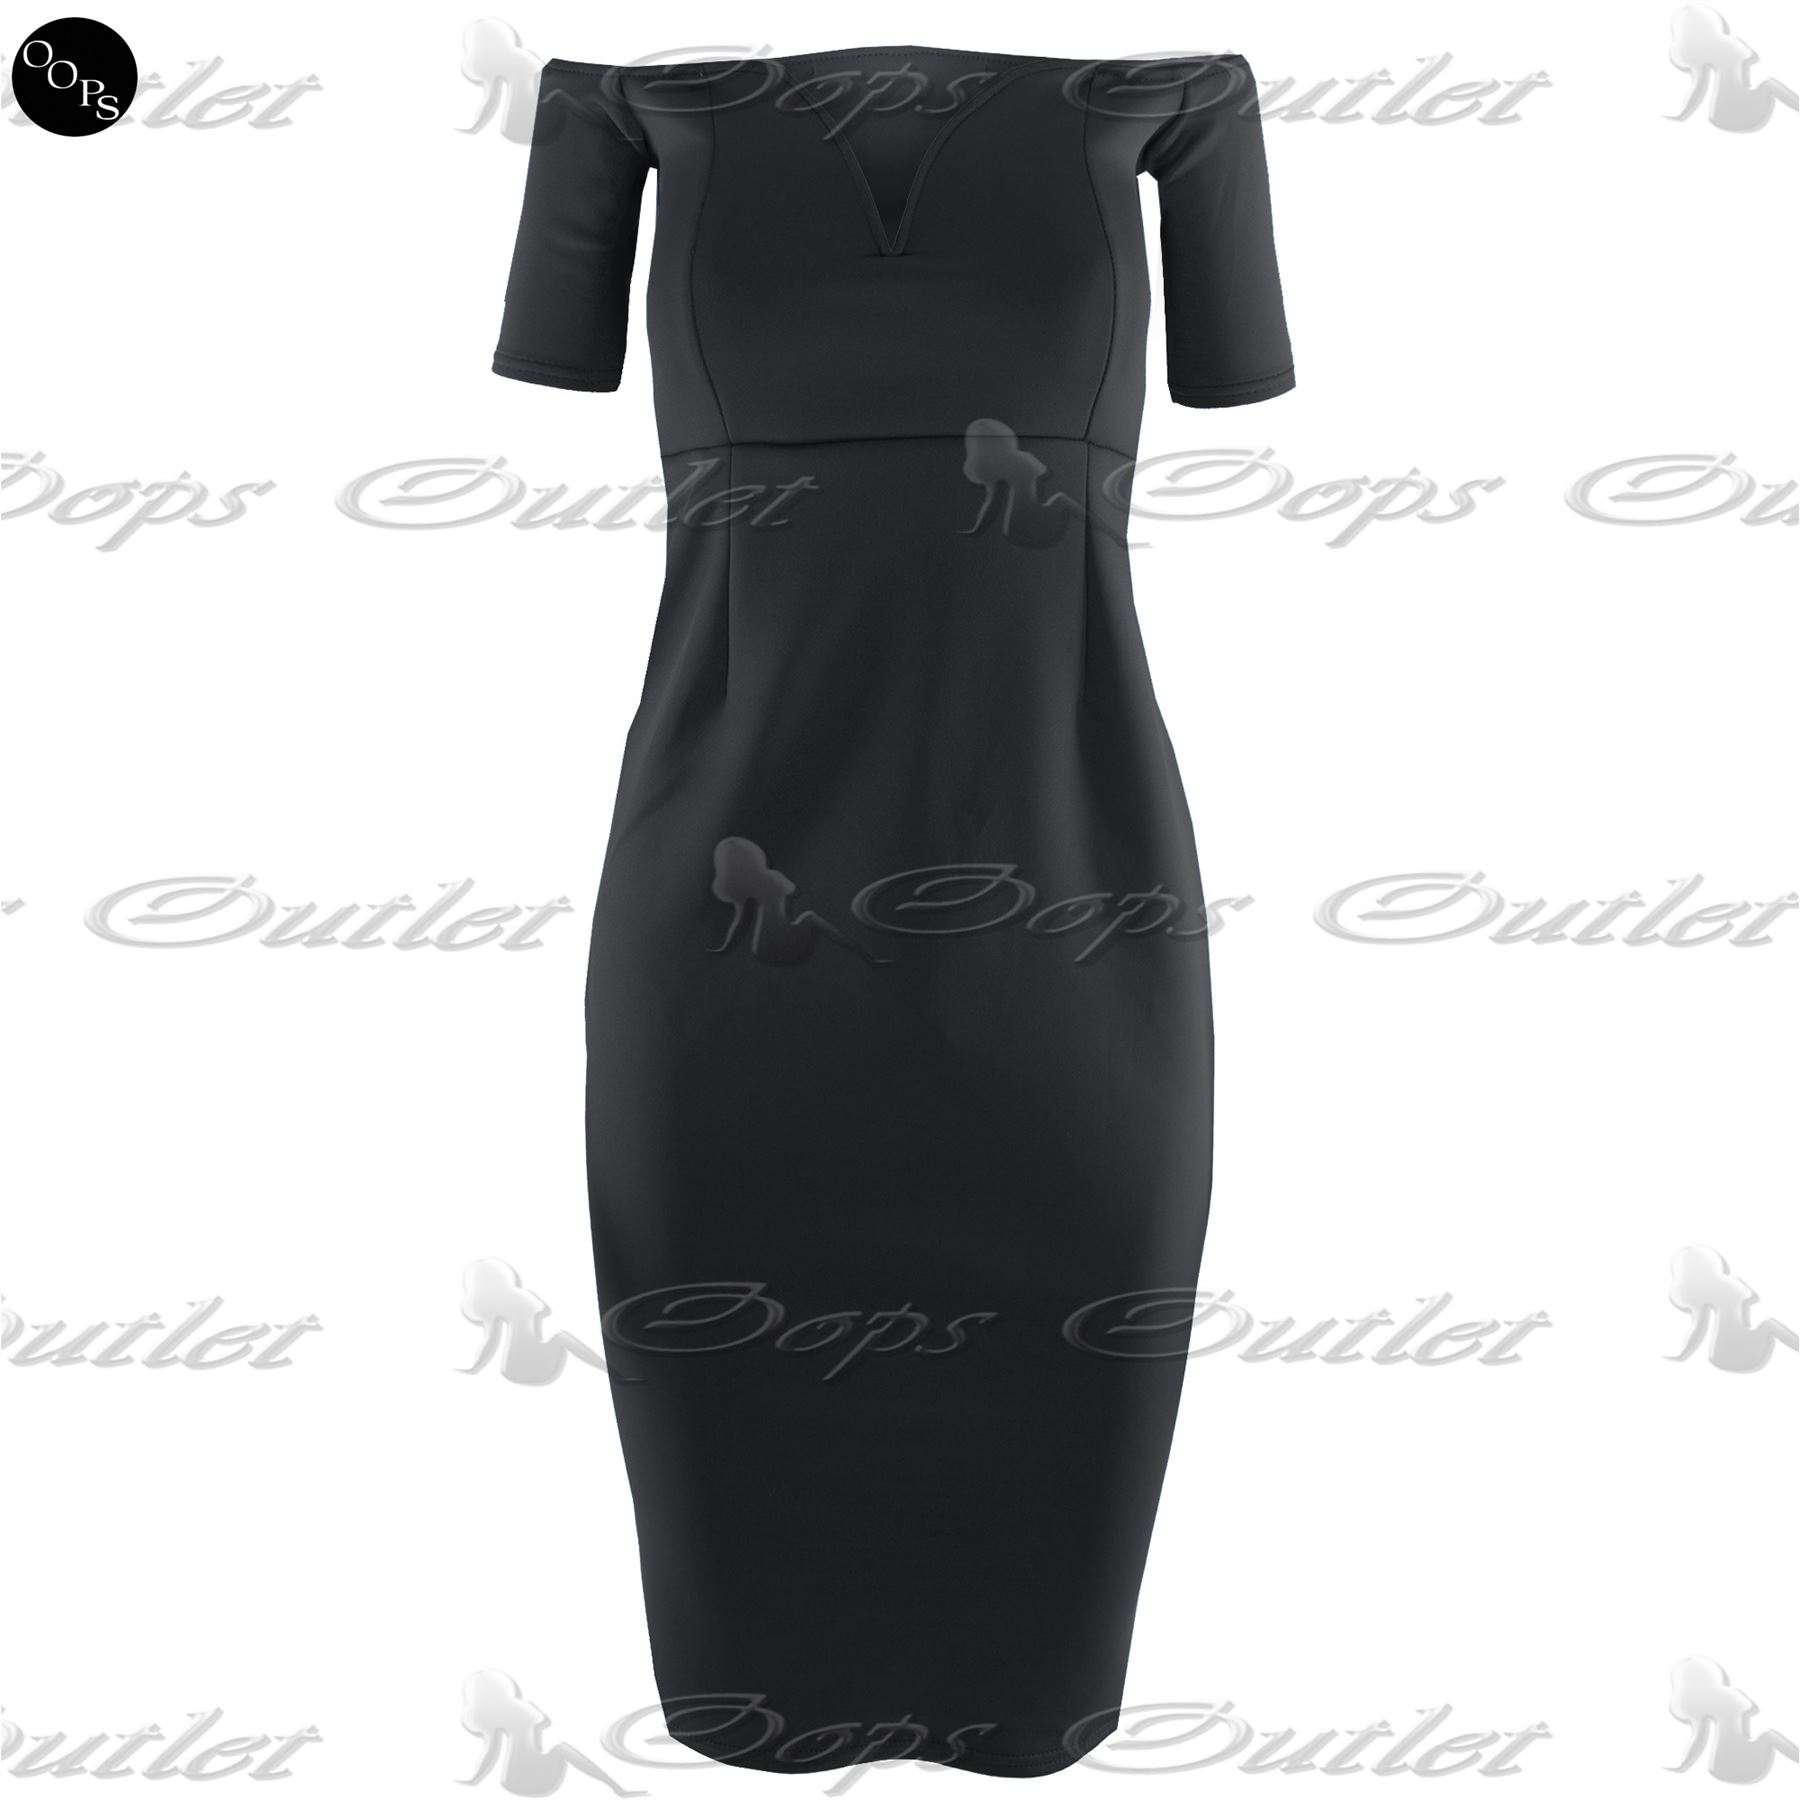 New-Womens-Boobtube-Bandeau-Ladies-Off-Shoulder-V-Neck-Bralet-Bodycon-Midi-Dress